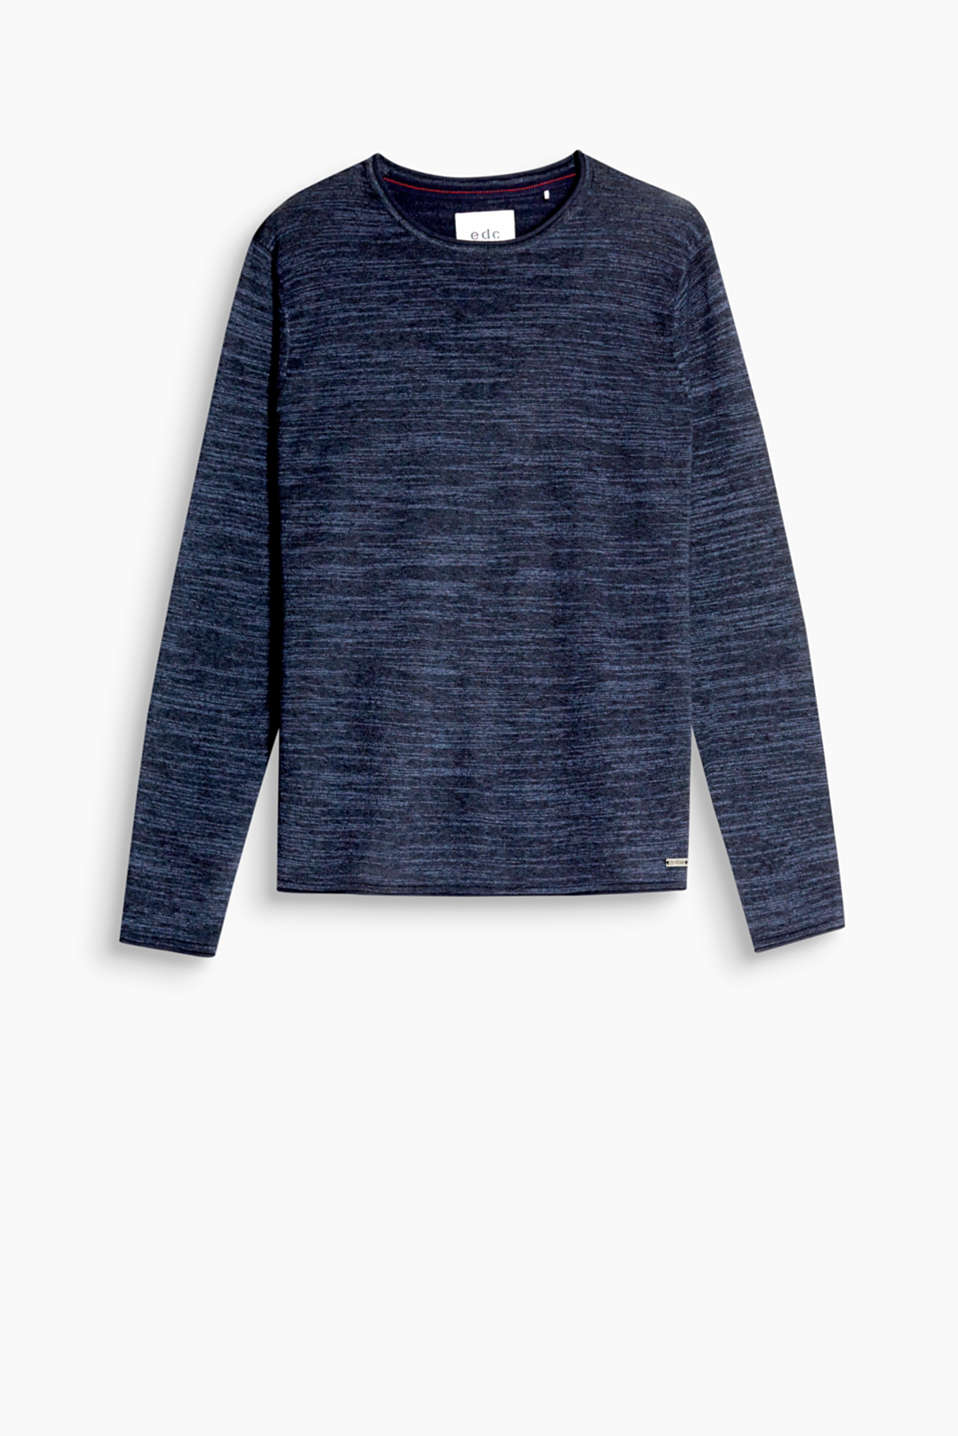 A sporty fashion essential: melange jumper with a round neckline, made of blended cotton